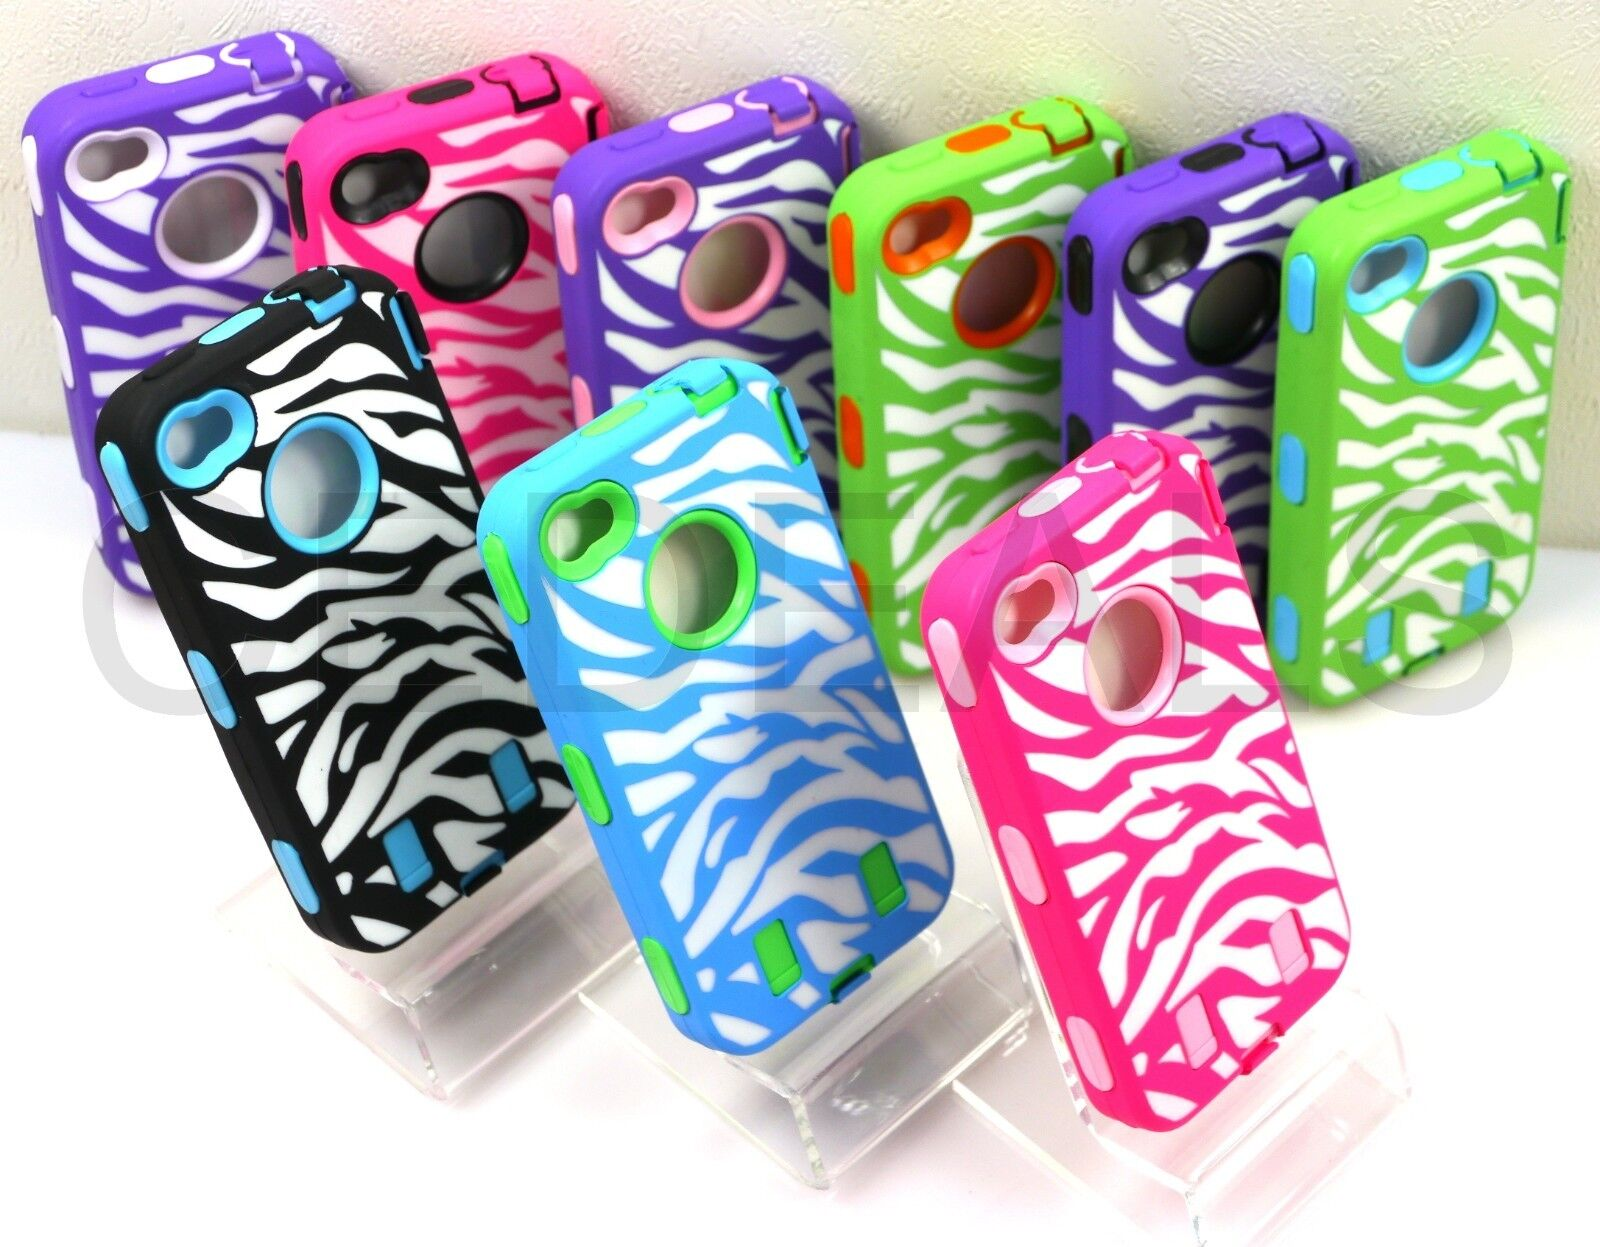 ZEBRA STRIPES DEFENDER HARD CASE RUBBER COVER w/ BUILT IN SCREEN FOR IPHONE 4 4S - $4.79